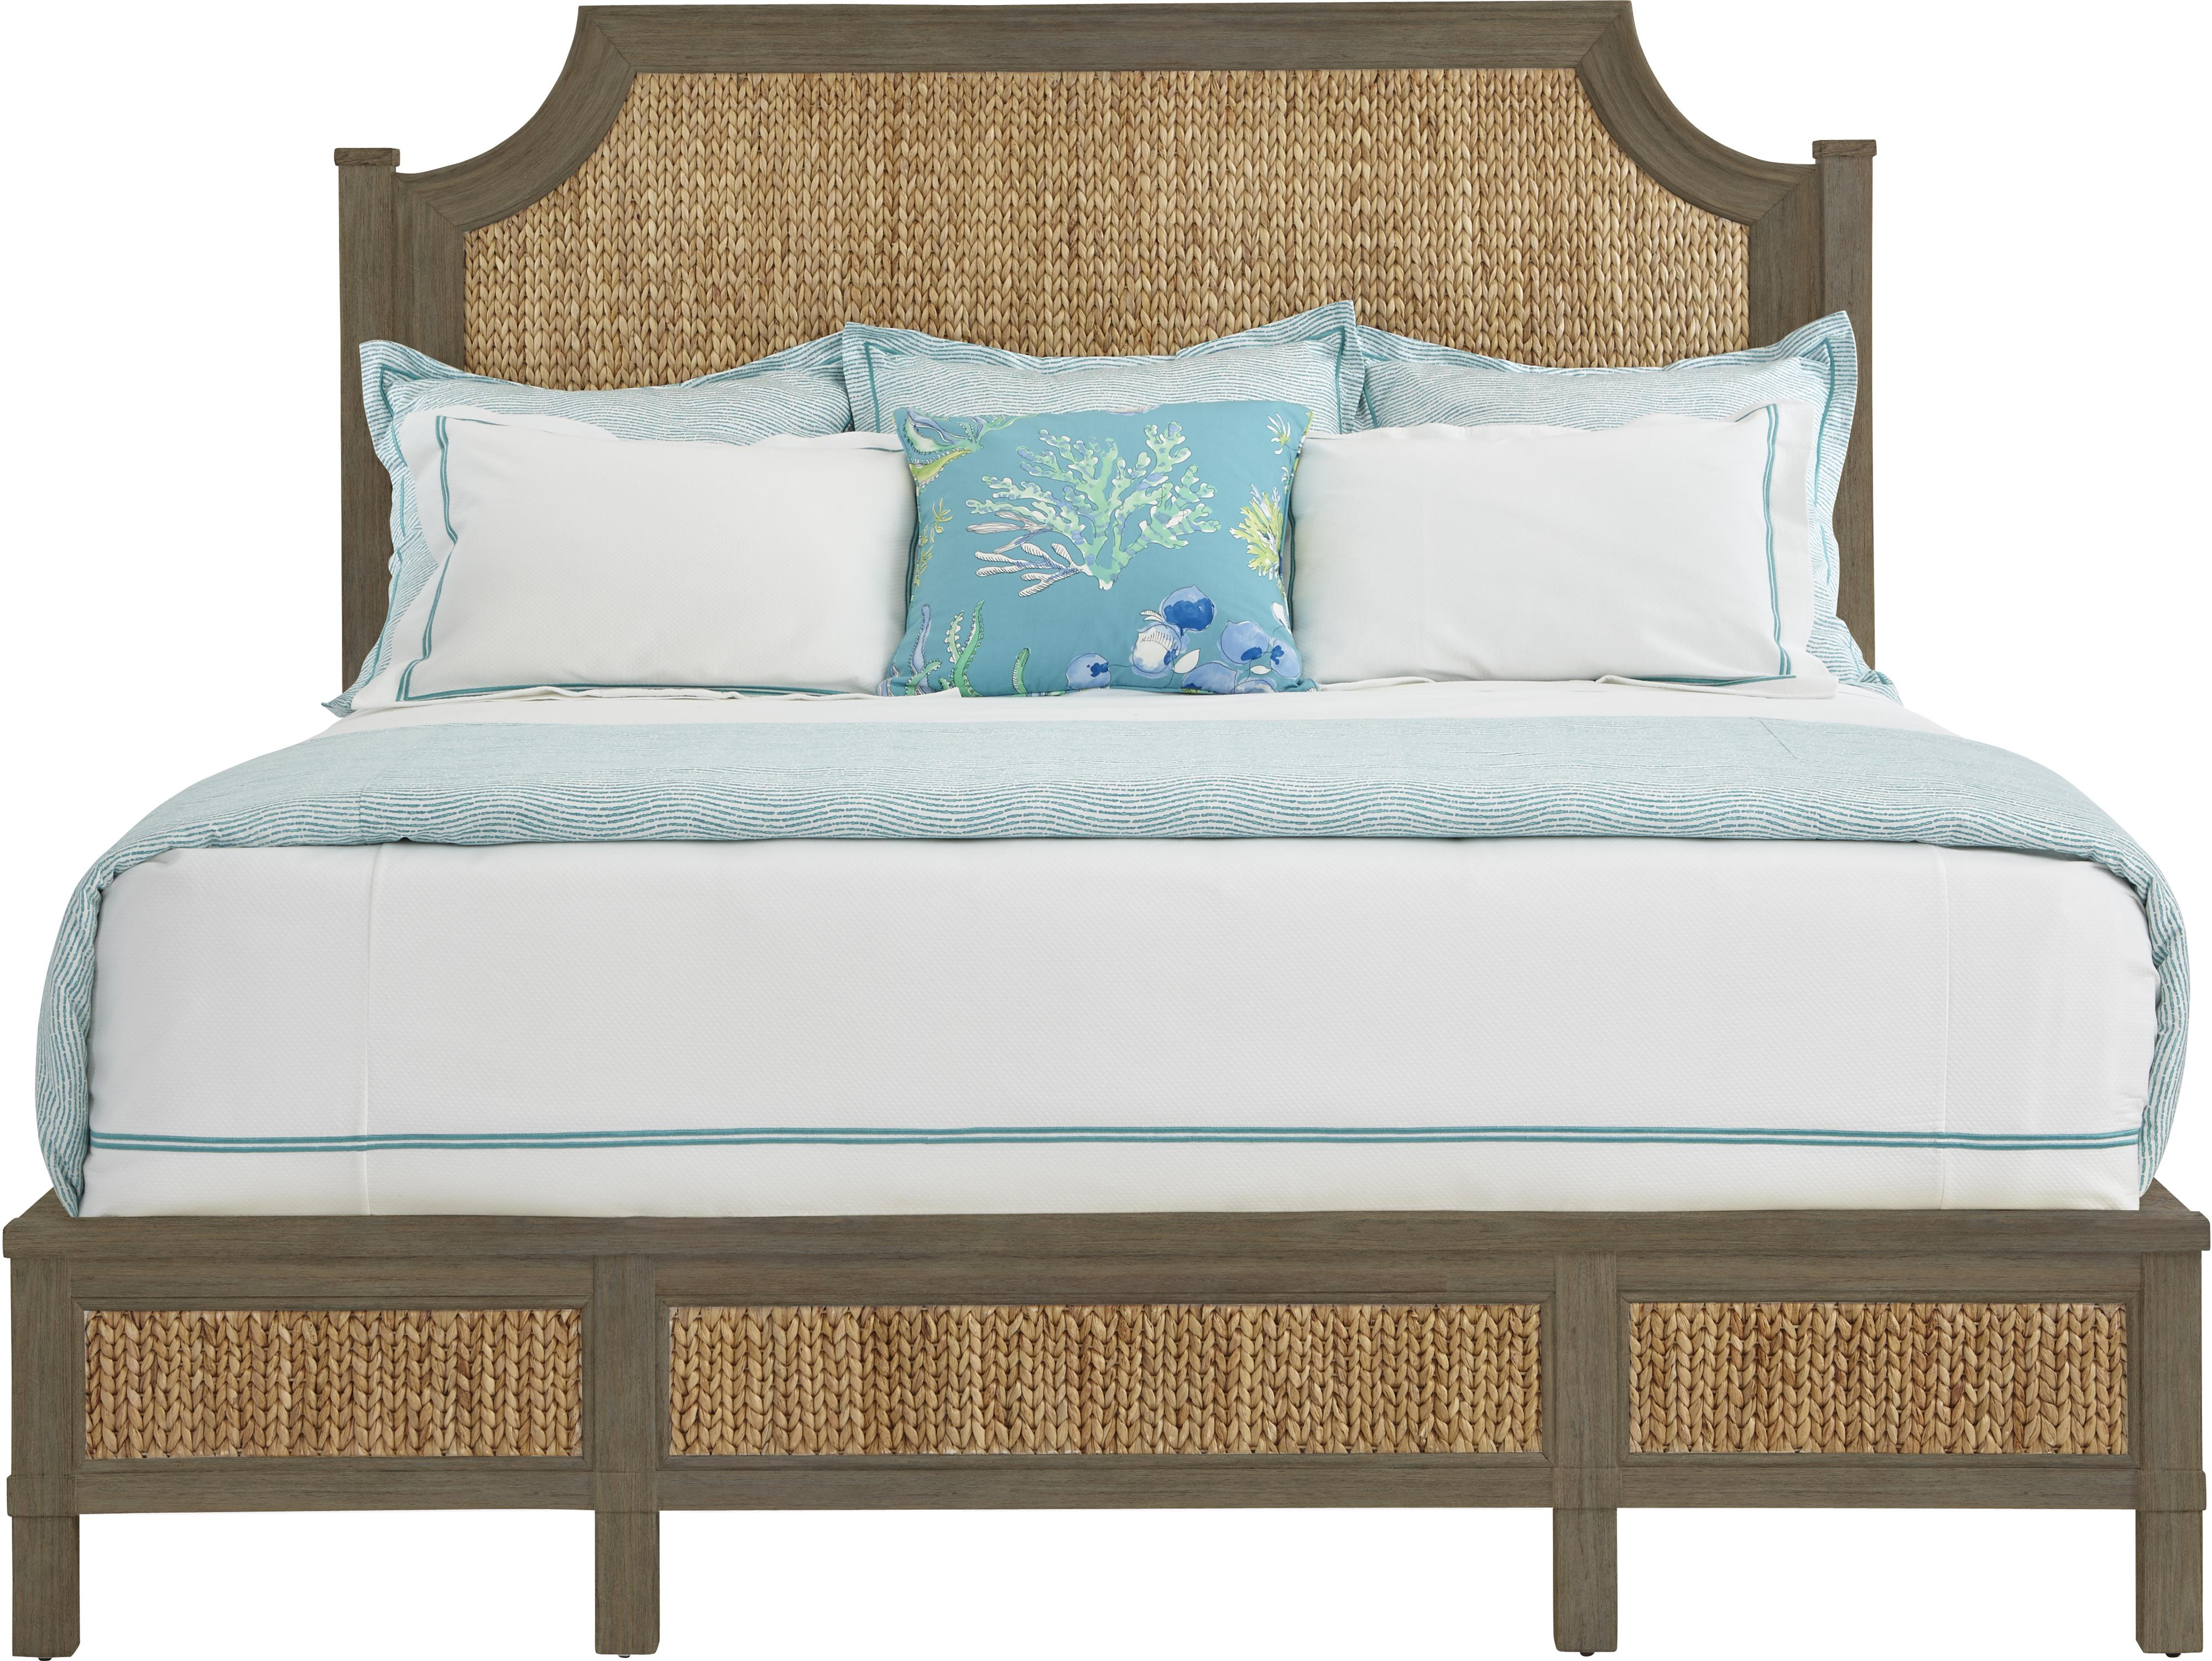 Stanley Furniture Coastal Living Resort California King Water Meadow Woven Bed - Item Number: 062-33-49